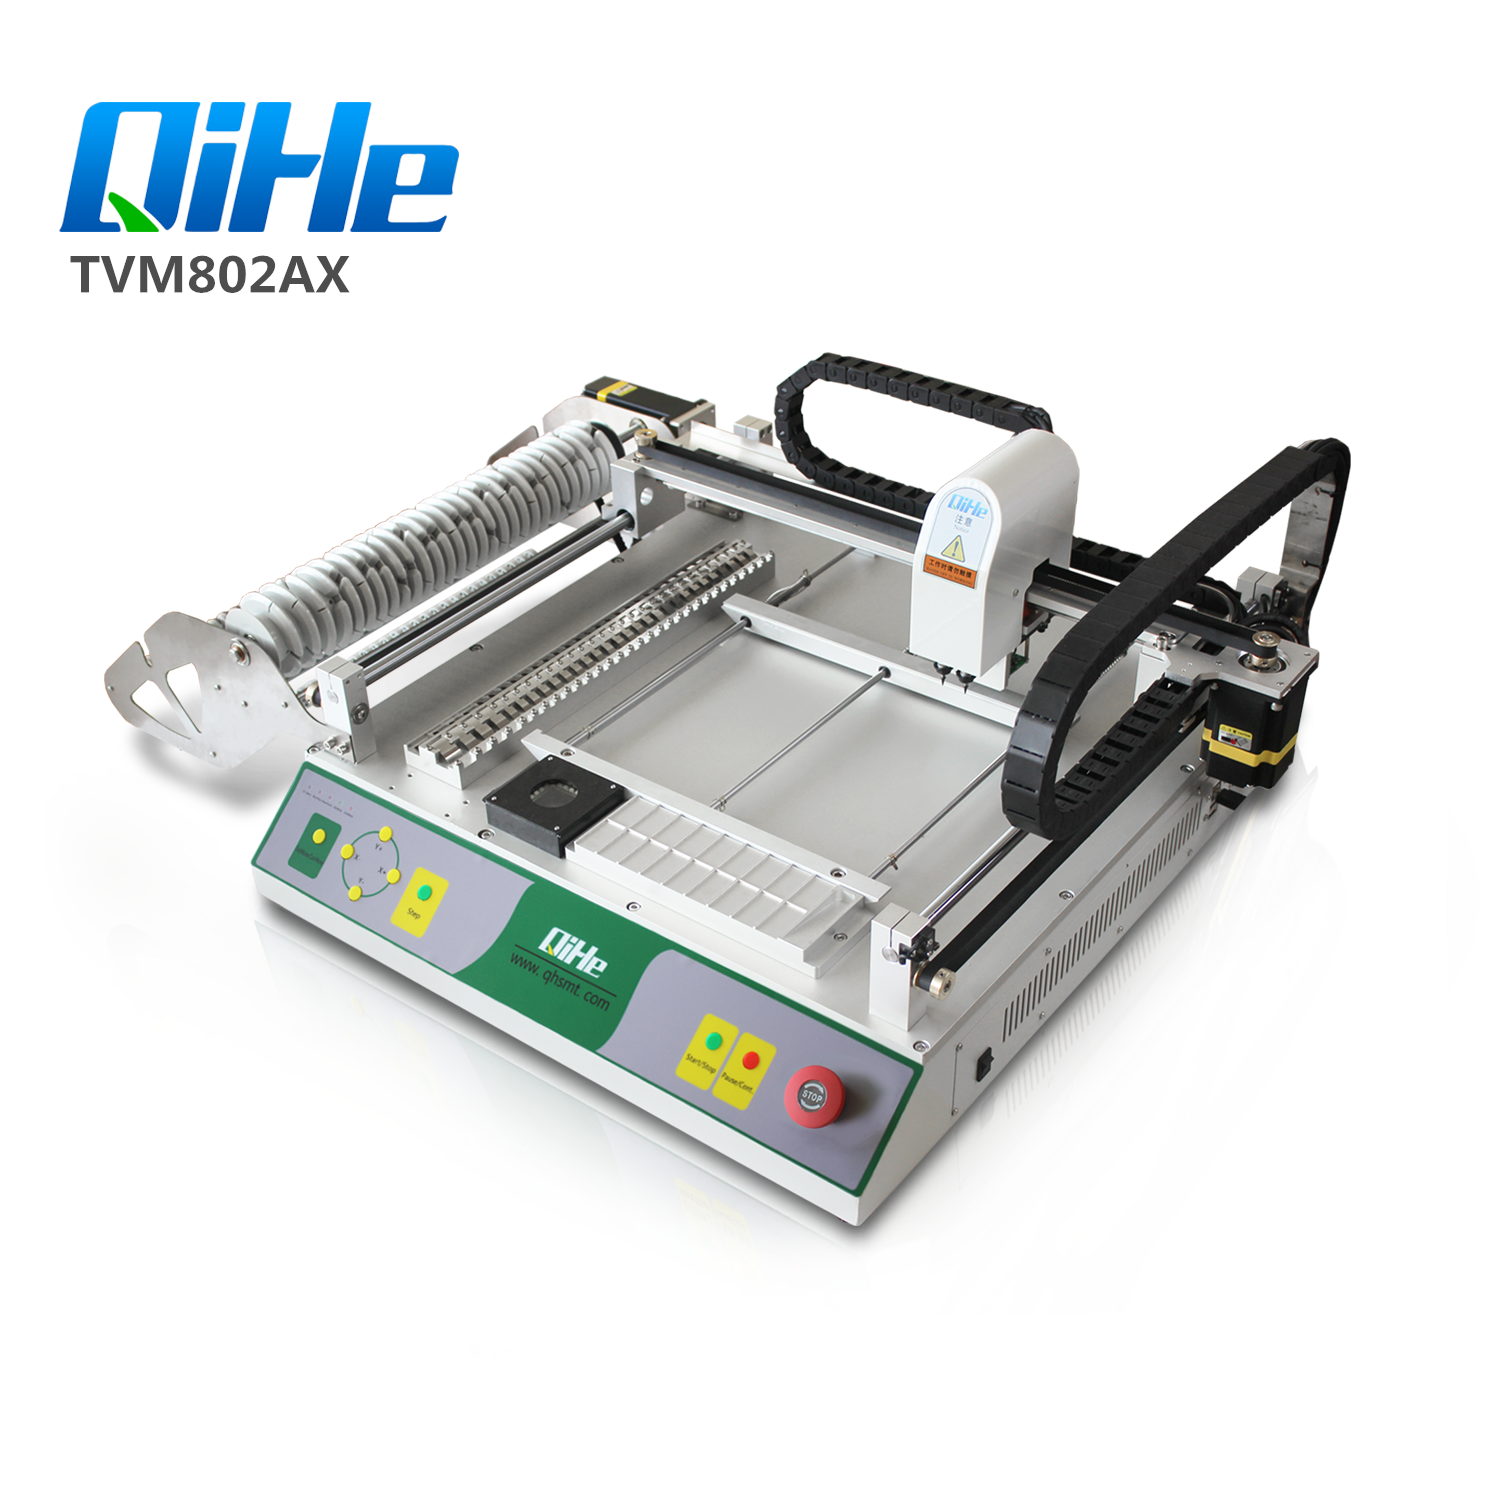 Low cost high speed desktop mini pick and place machine chip mounter SMT LED assembly pcb board printing machine